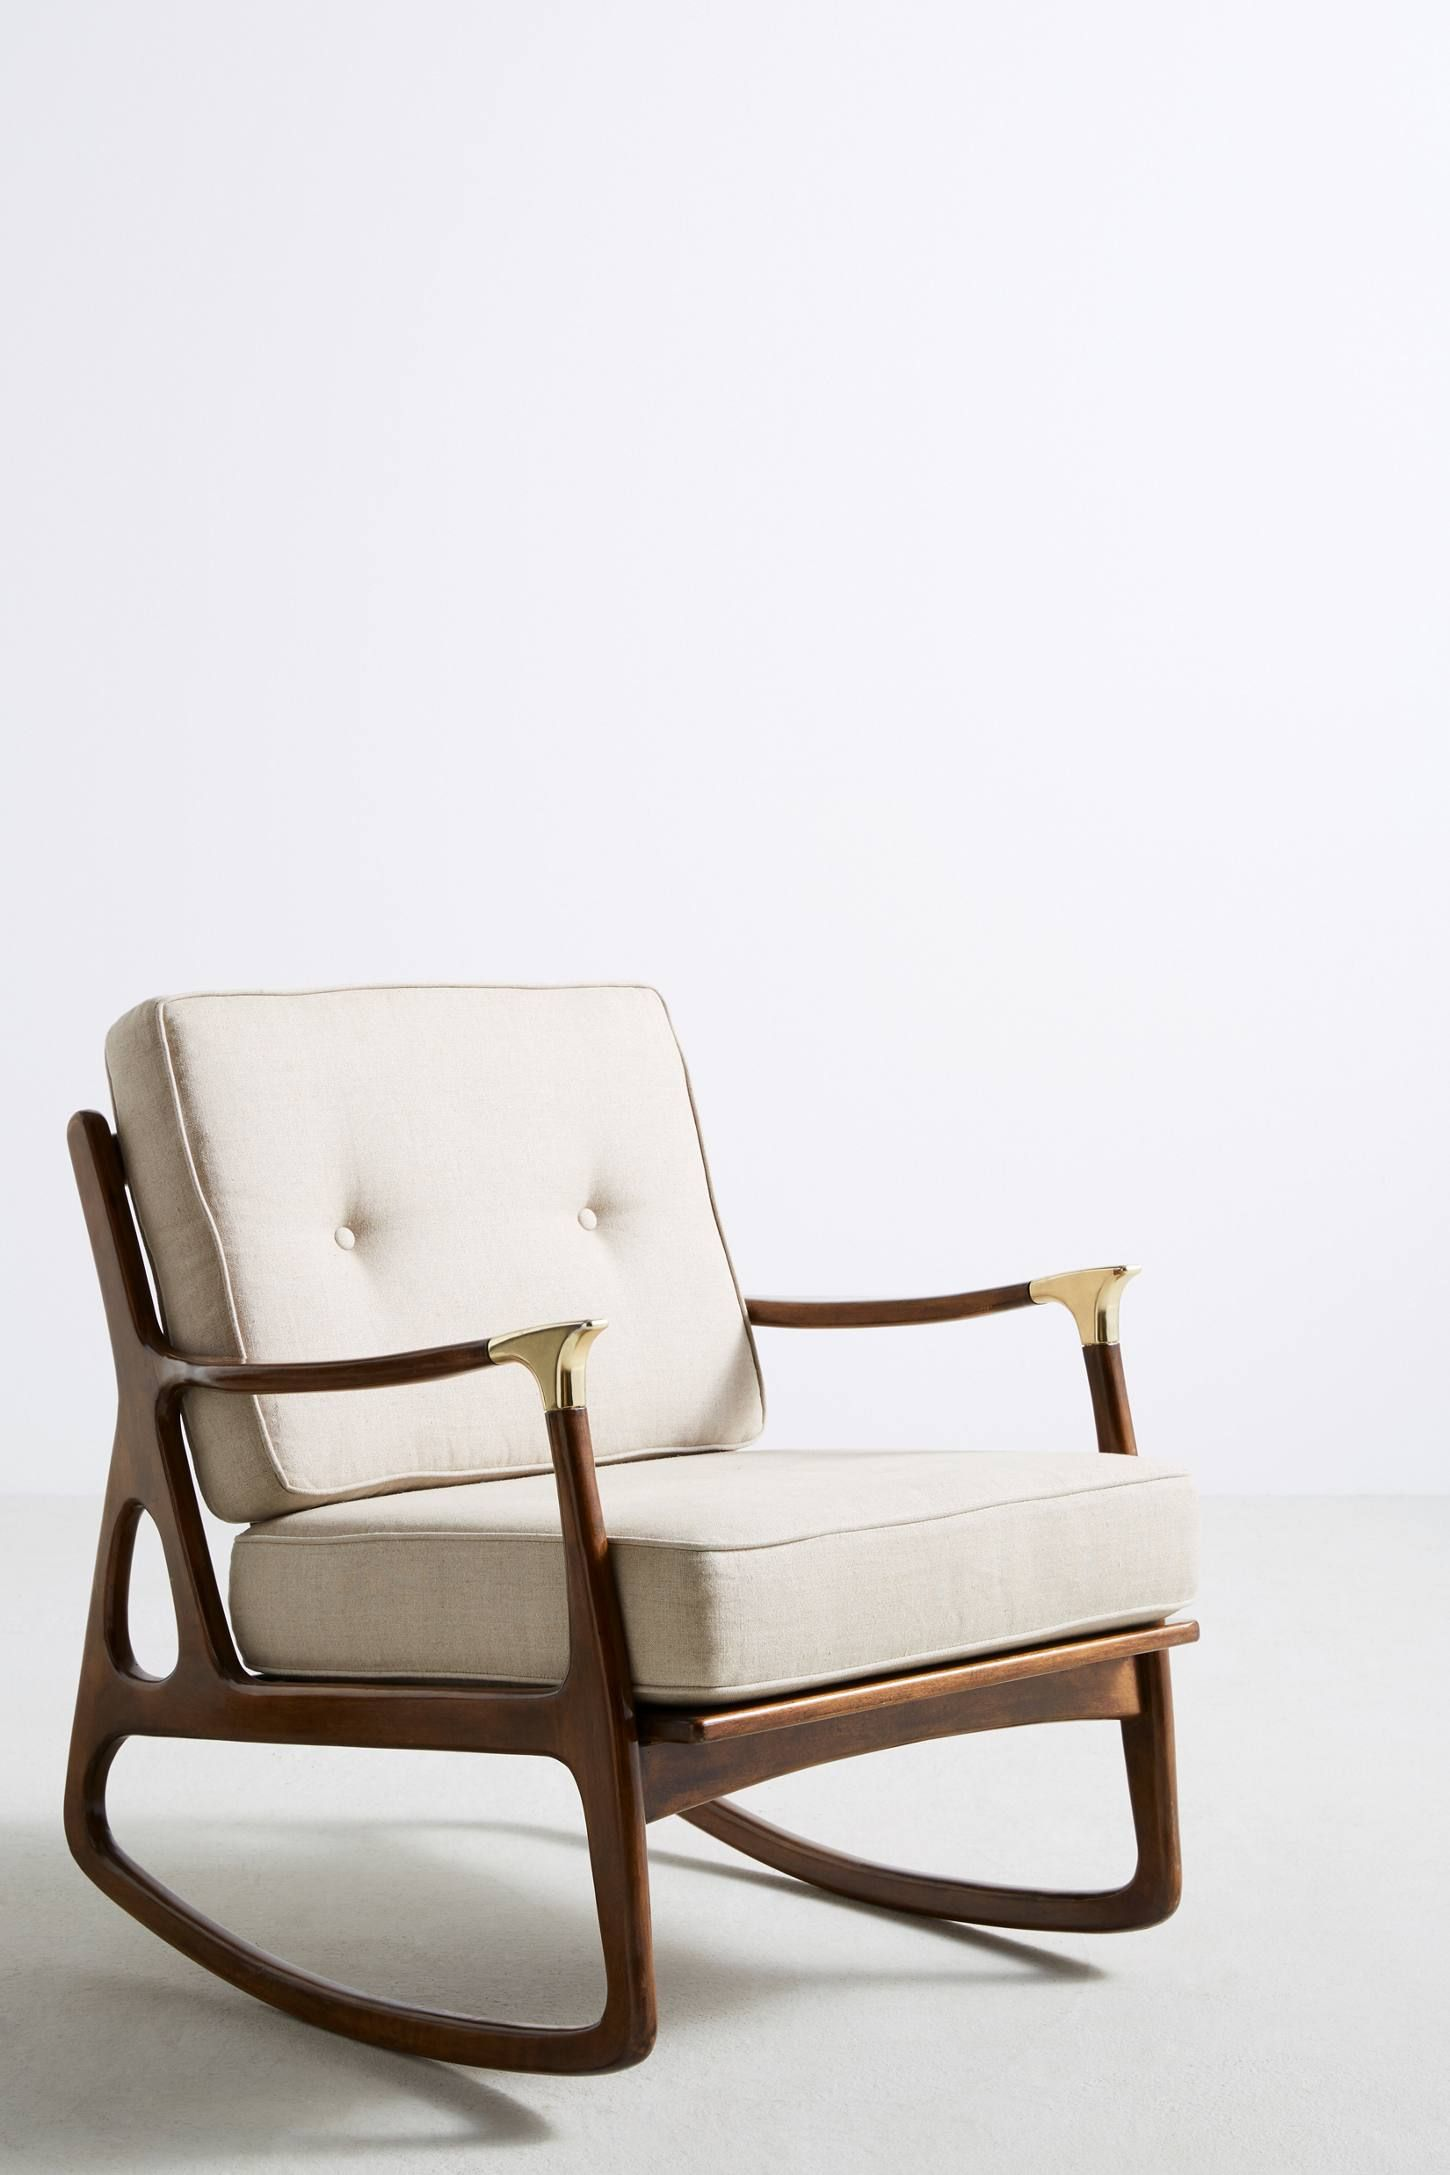 Best Place To Buy Rocking Chairs Haverhill Rocking Chair